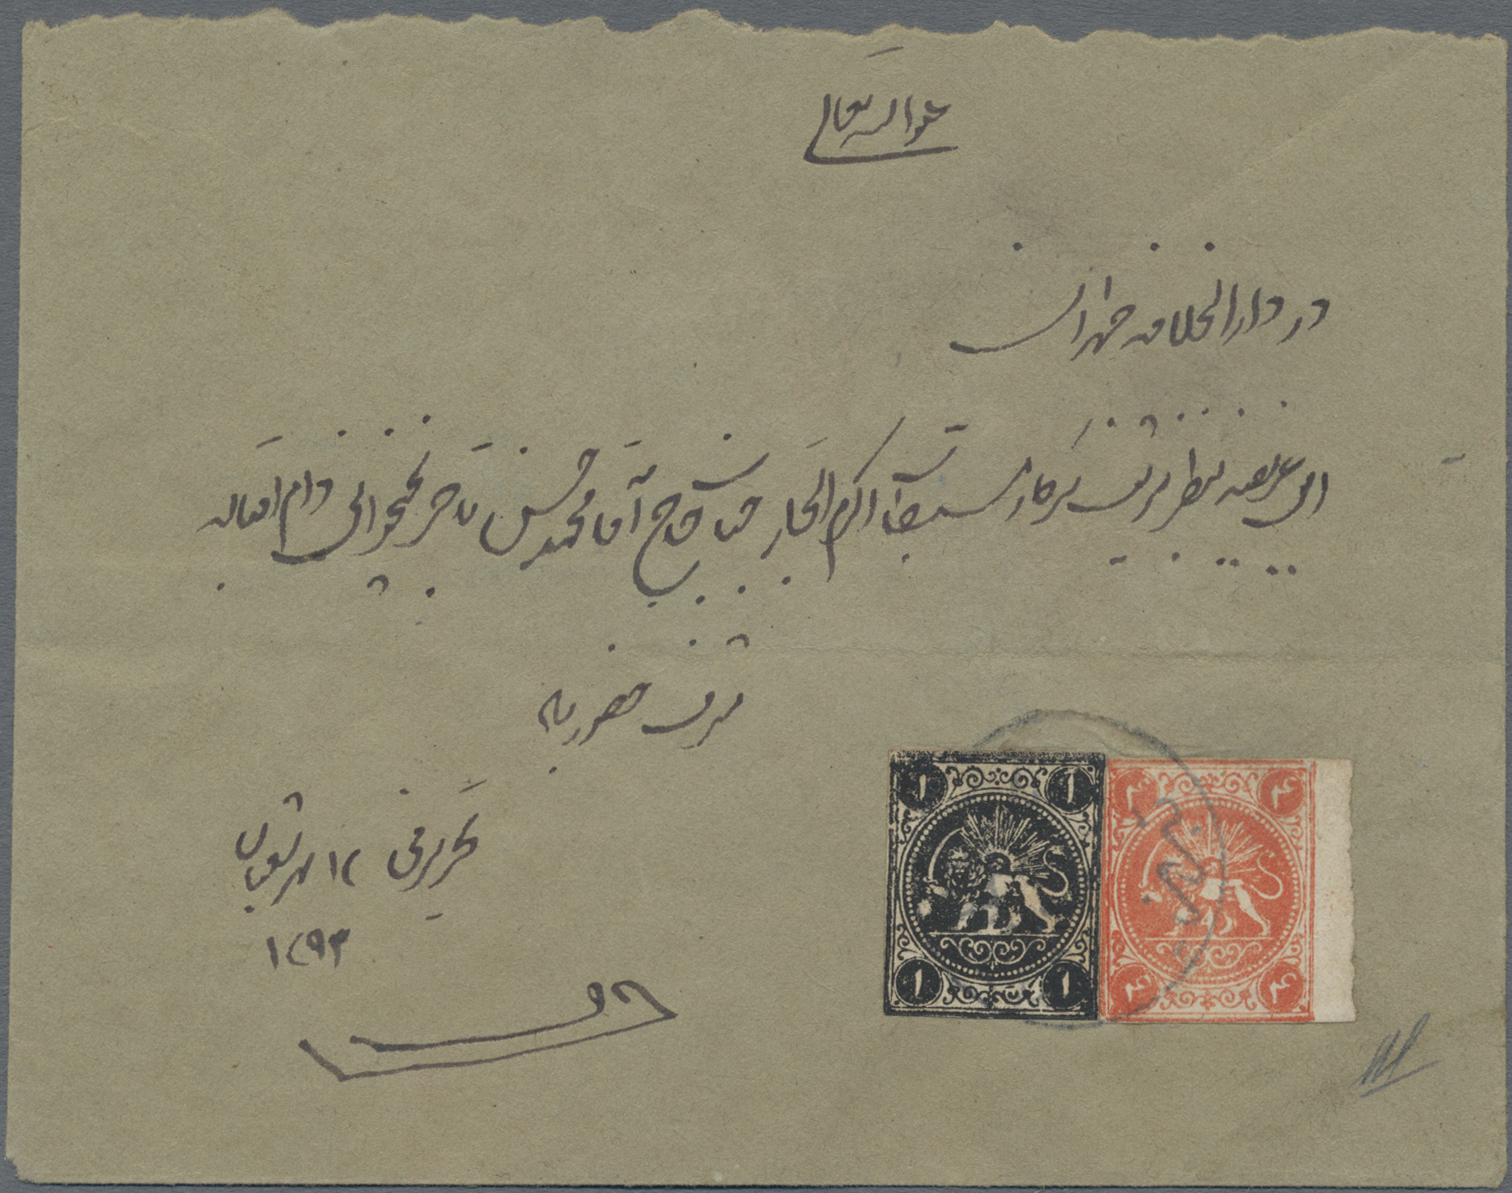 Lot 34668 - iran  -  Auktionshaus Christoph Gärtner GmbH & Co. KG Sale #44 Collections Germany